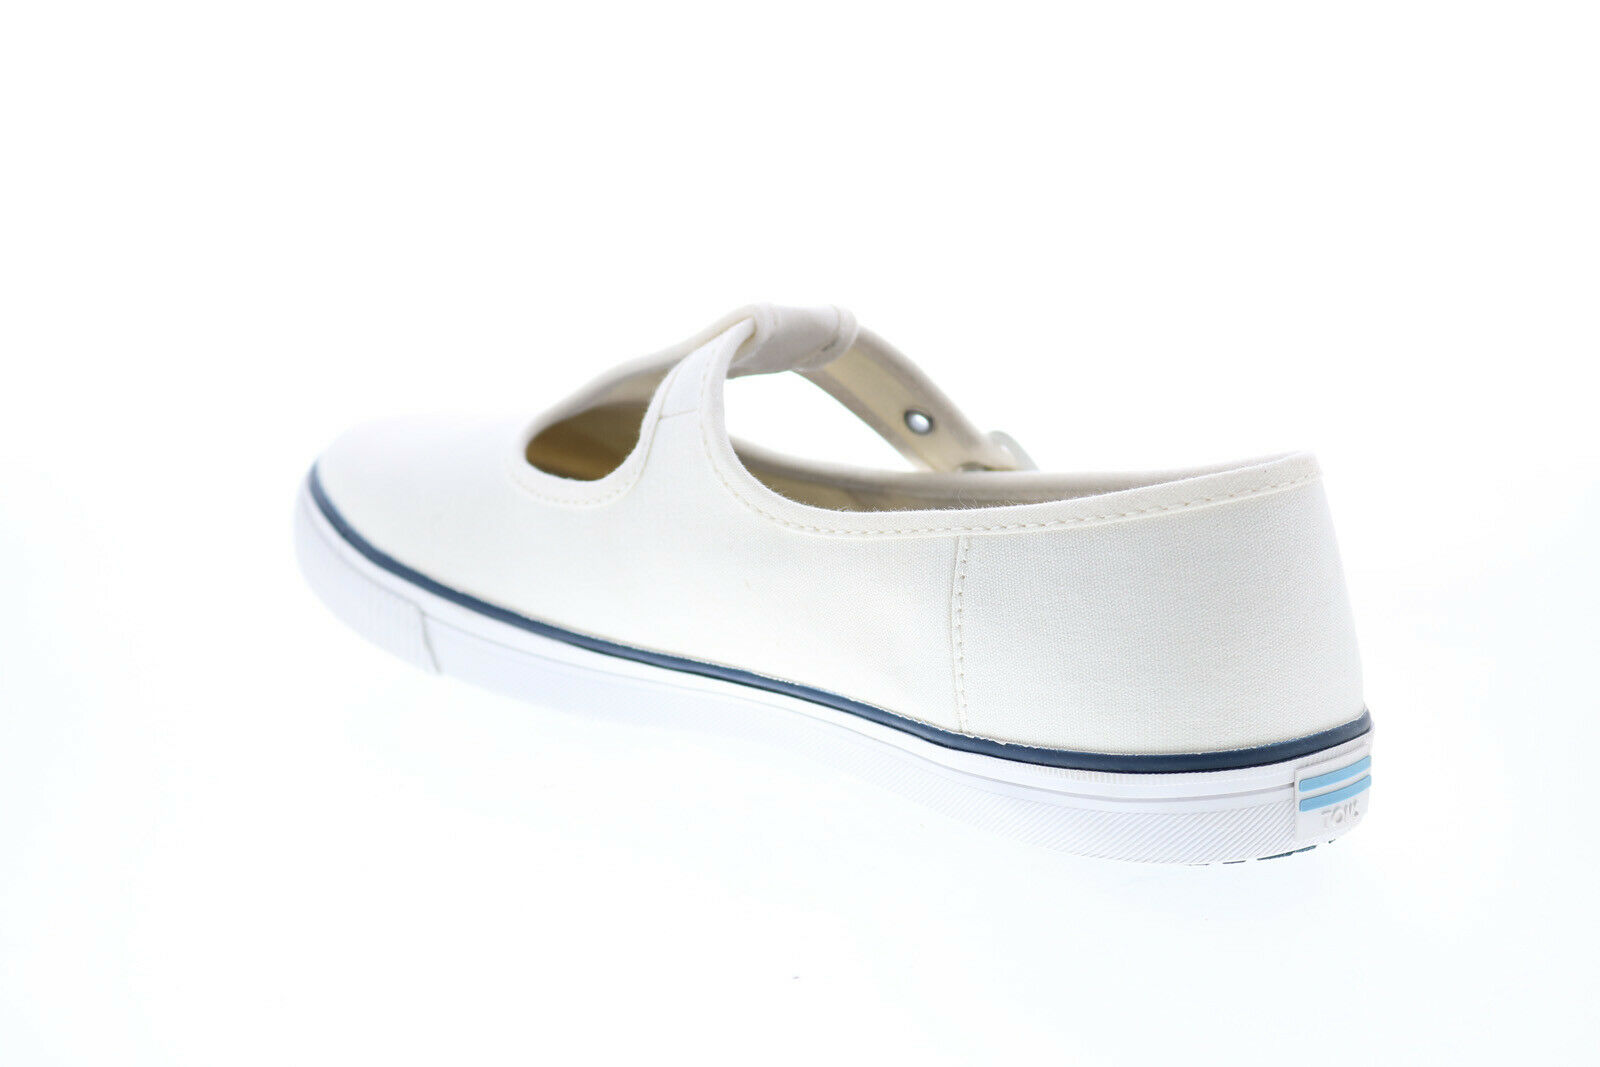 Toms Joon 10015100 Womens White Canvas Flats Mary Jane Shoes